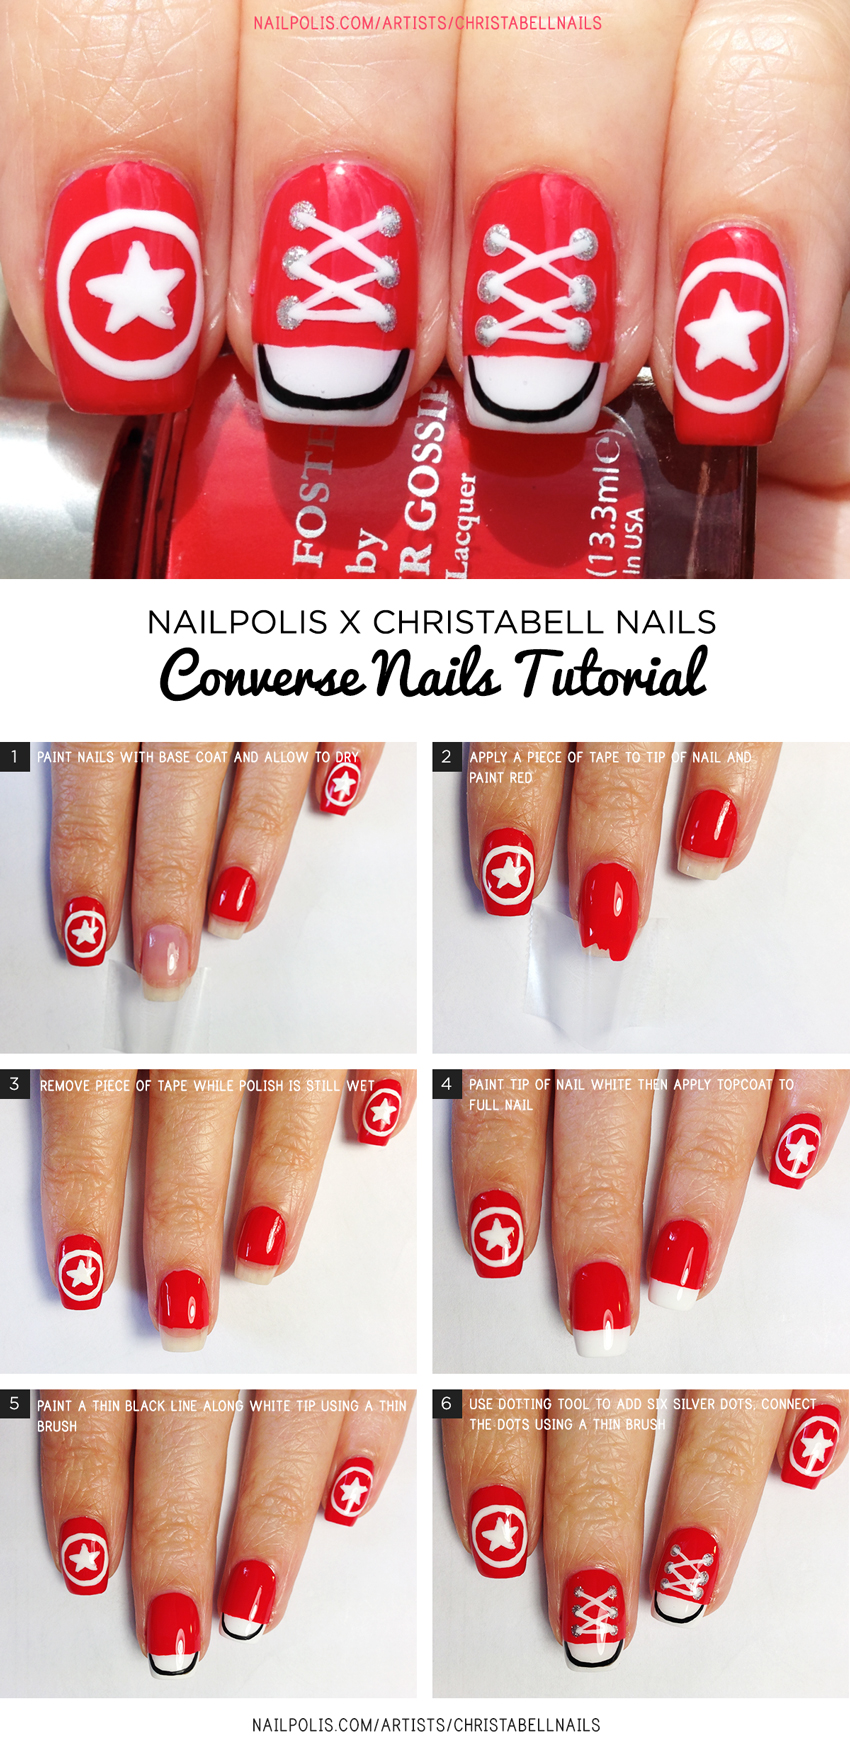 Nail Art Tutorials | Nailpolis Magazine